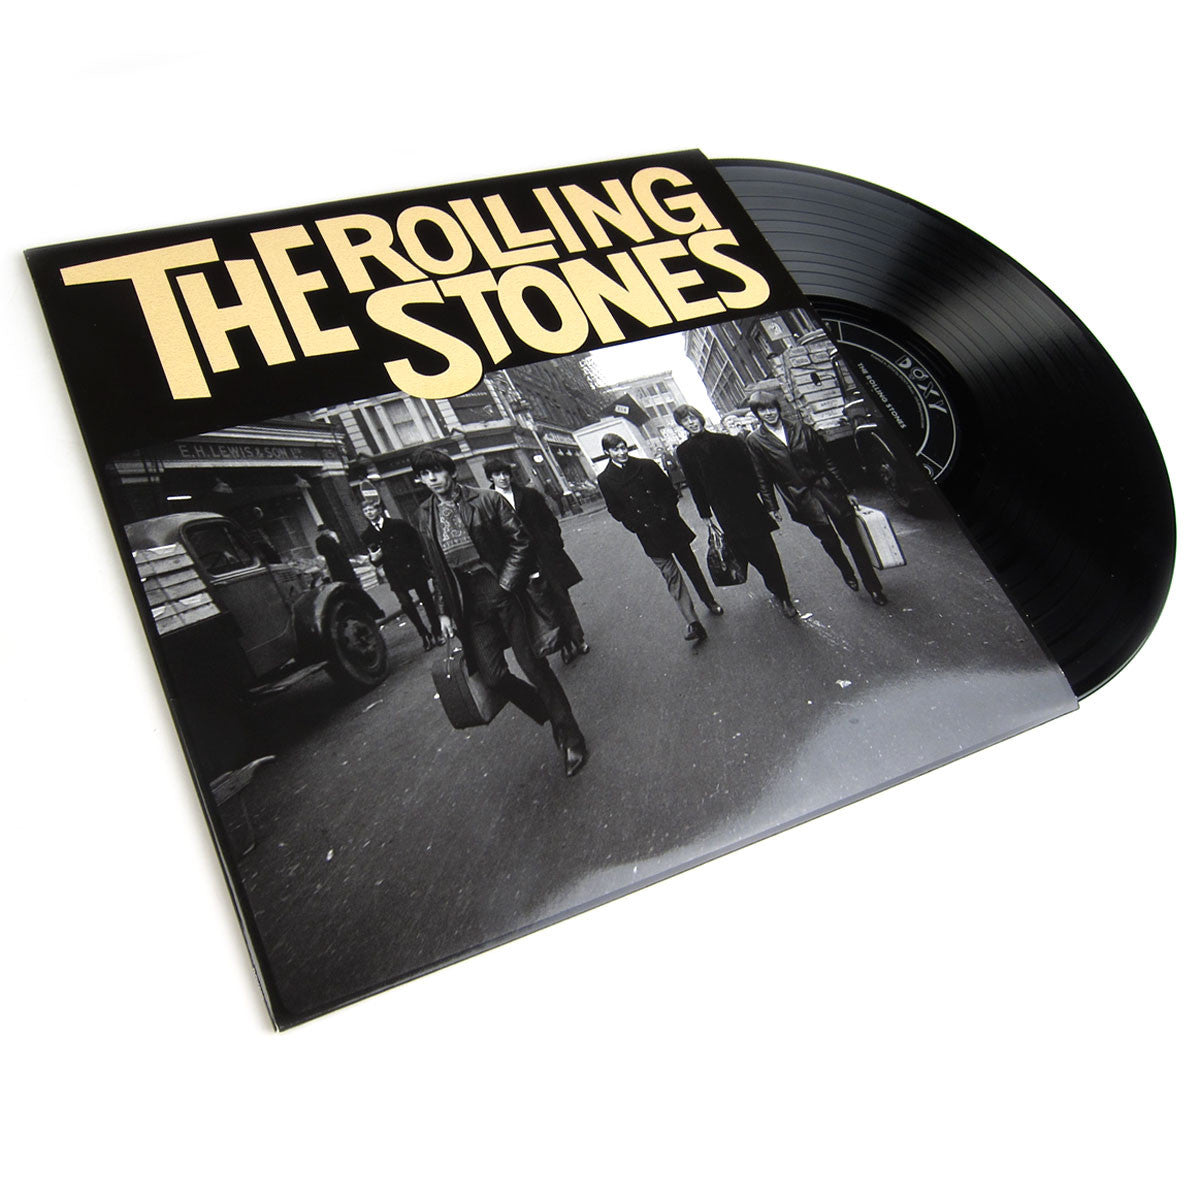 The Rolling Stones: The Rolling Stones Vinyl - 1963 Studio Sessions LP